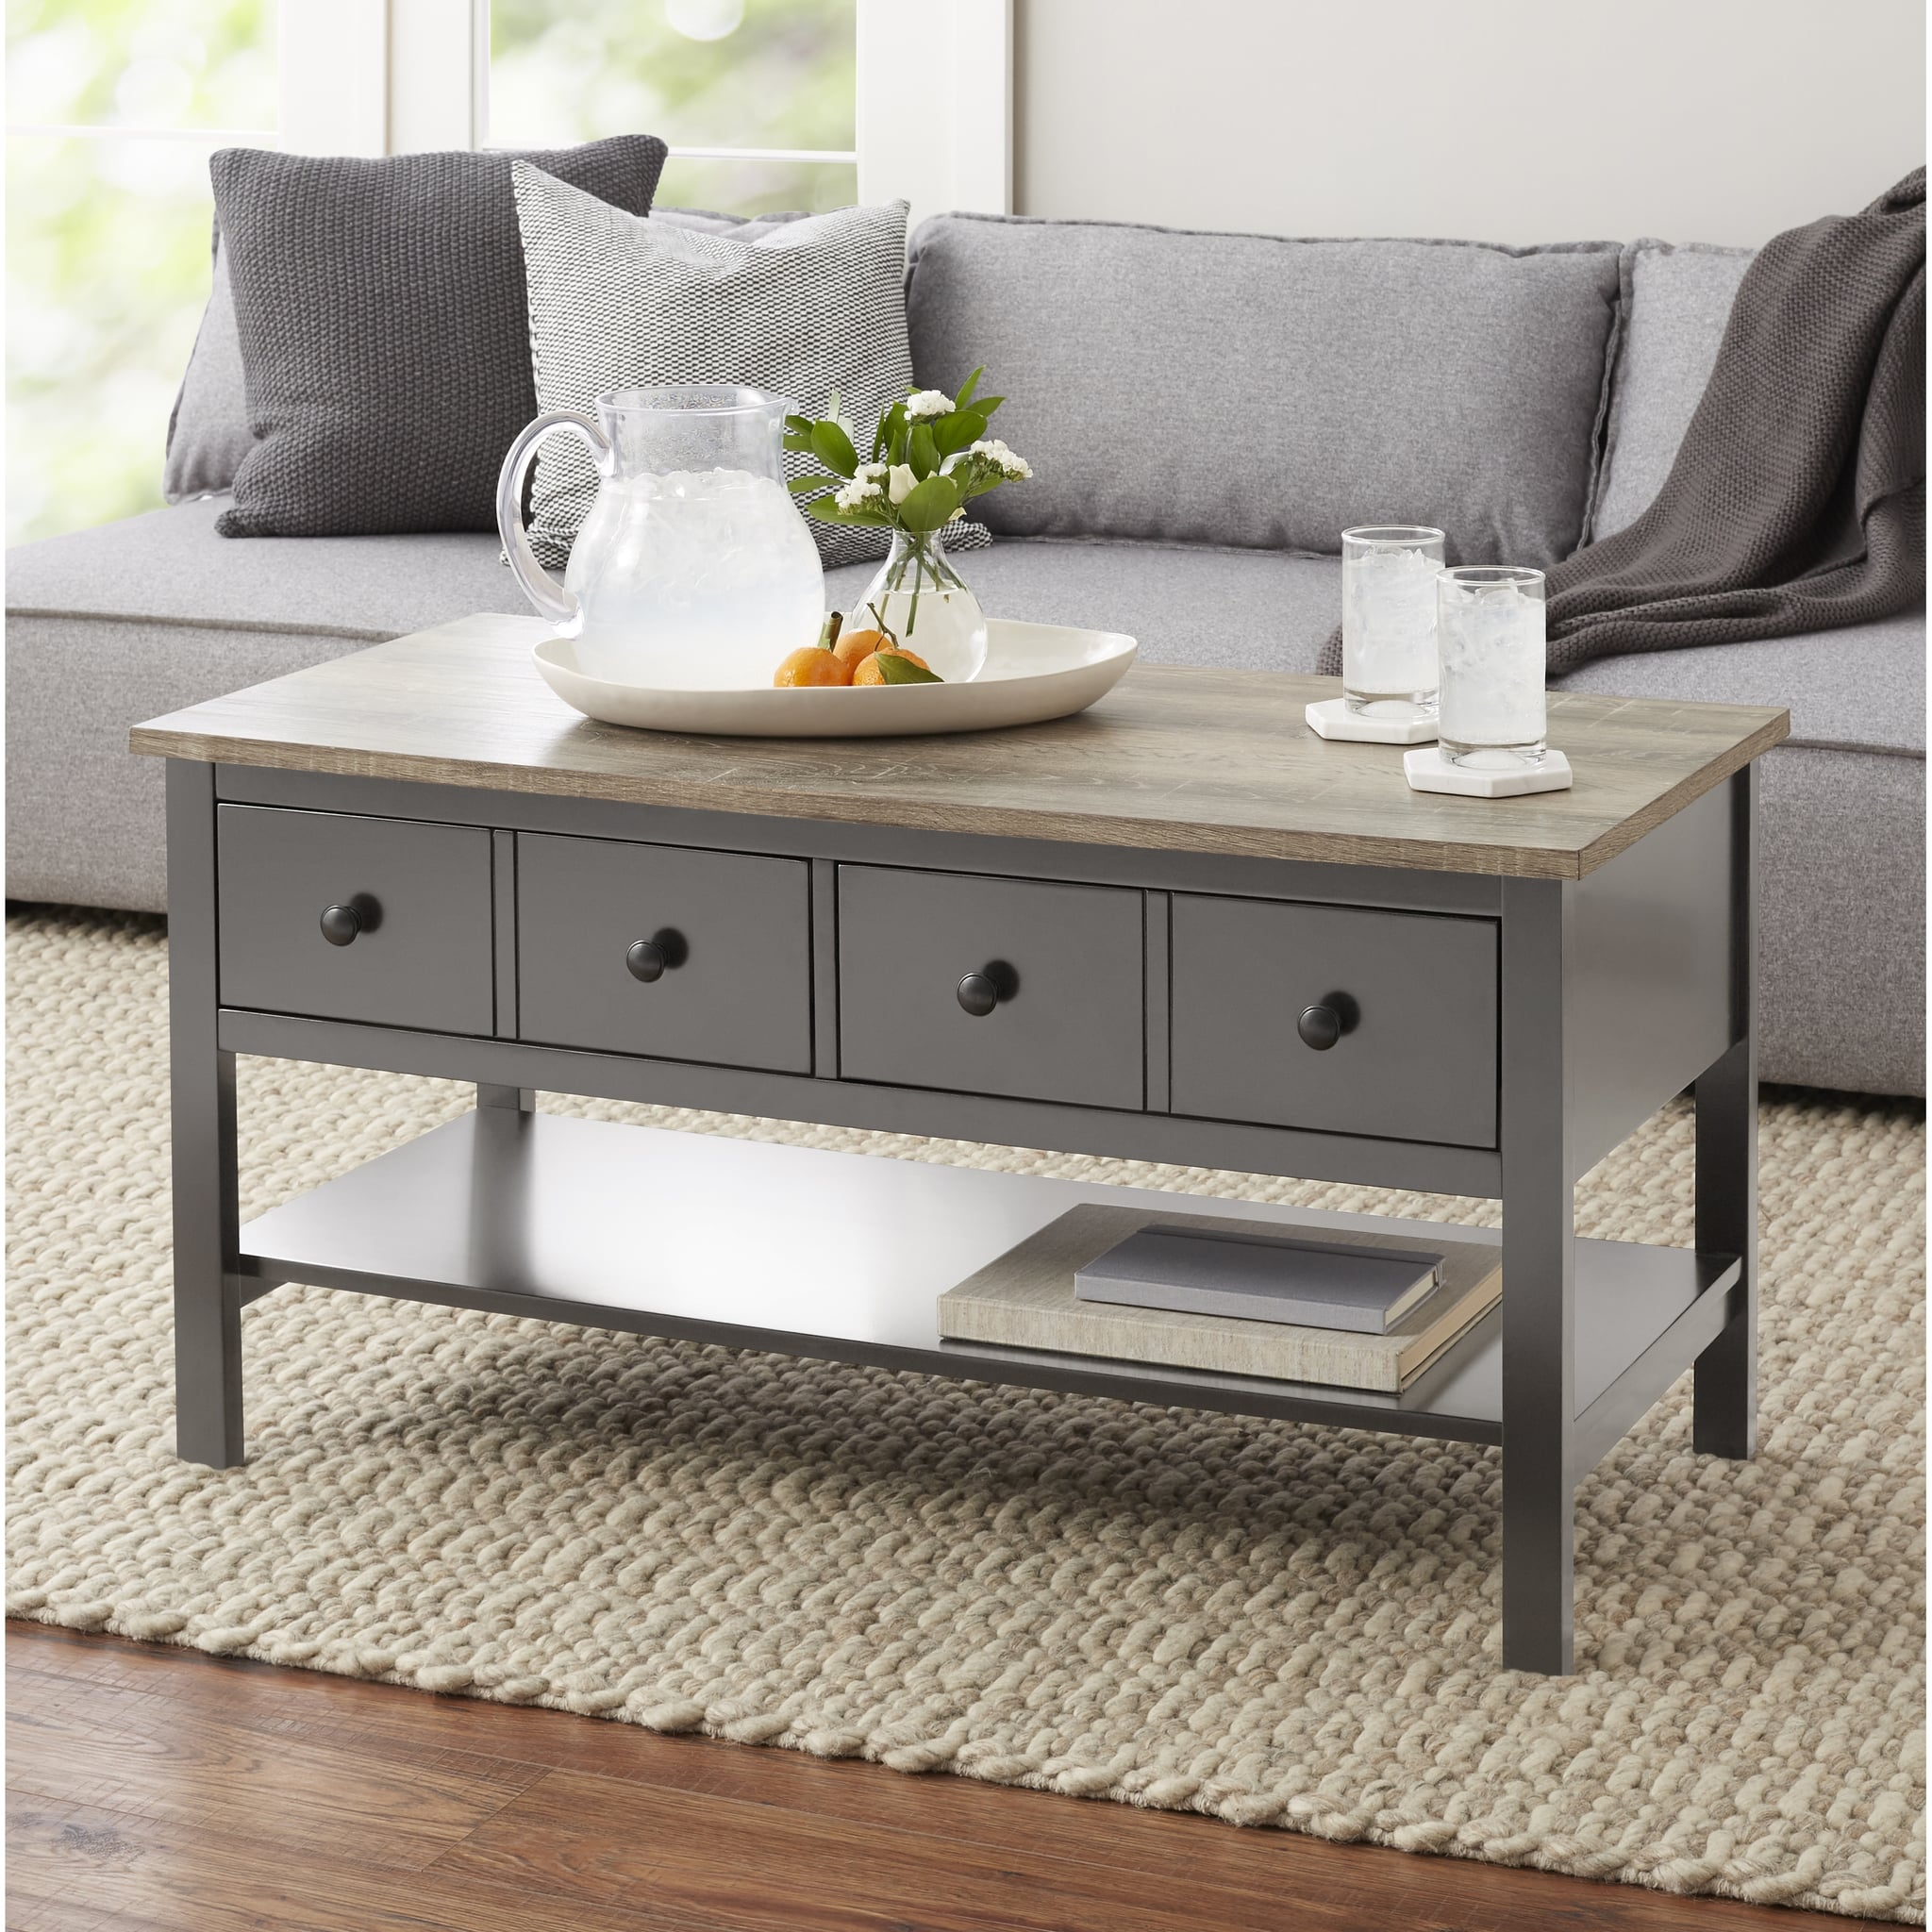 Better Homes & Gardens Laurel Console Table | Tiny Living ...